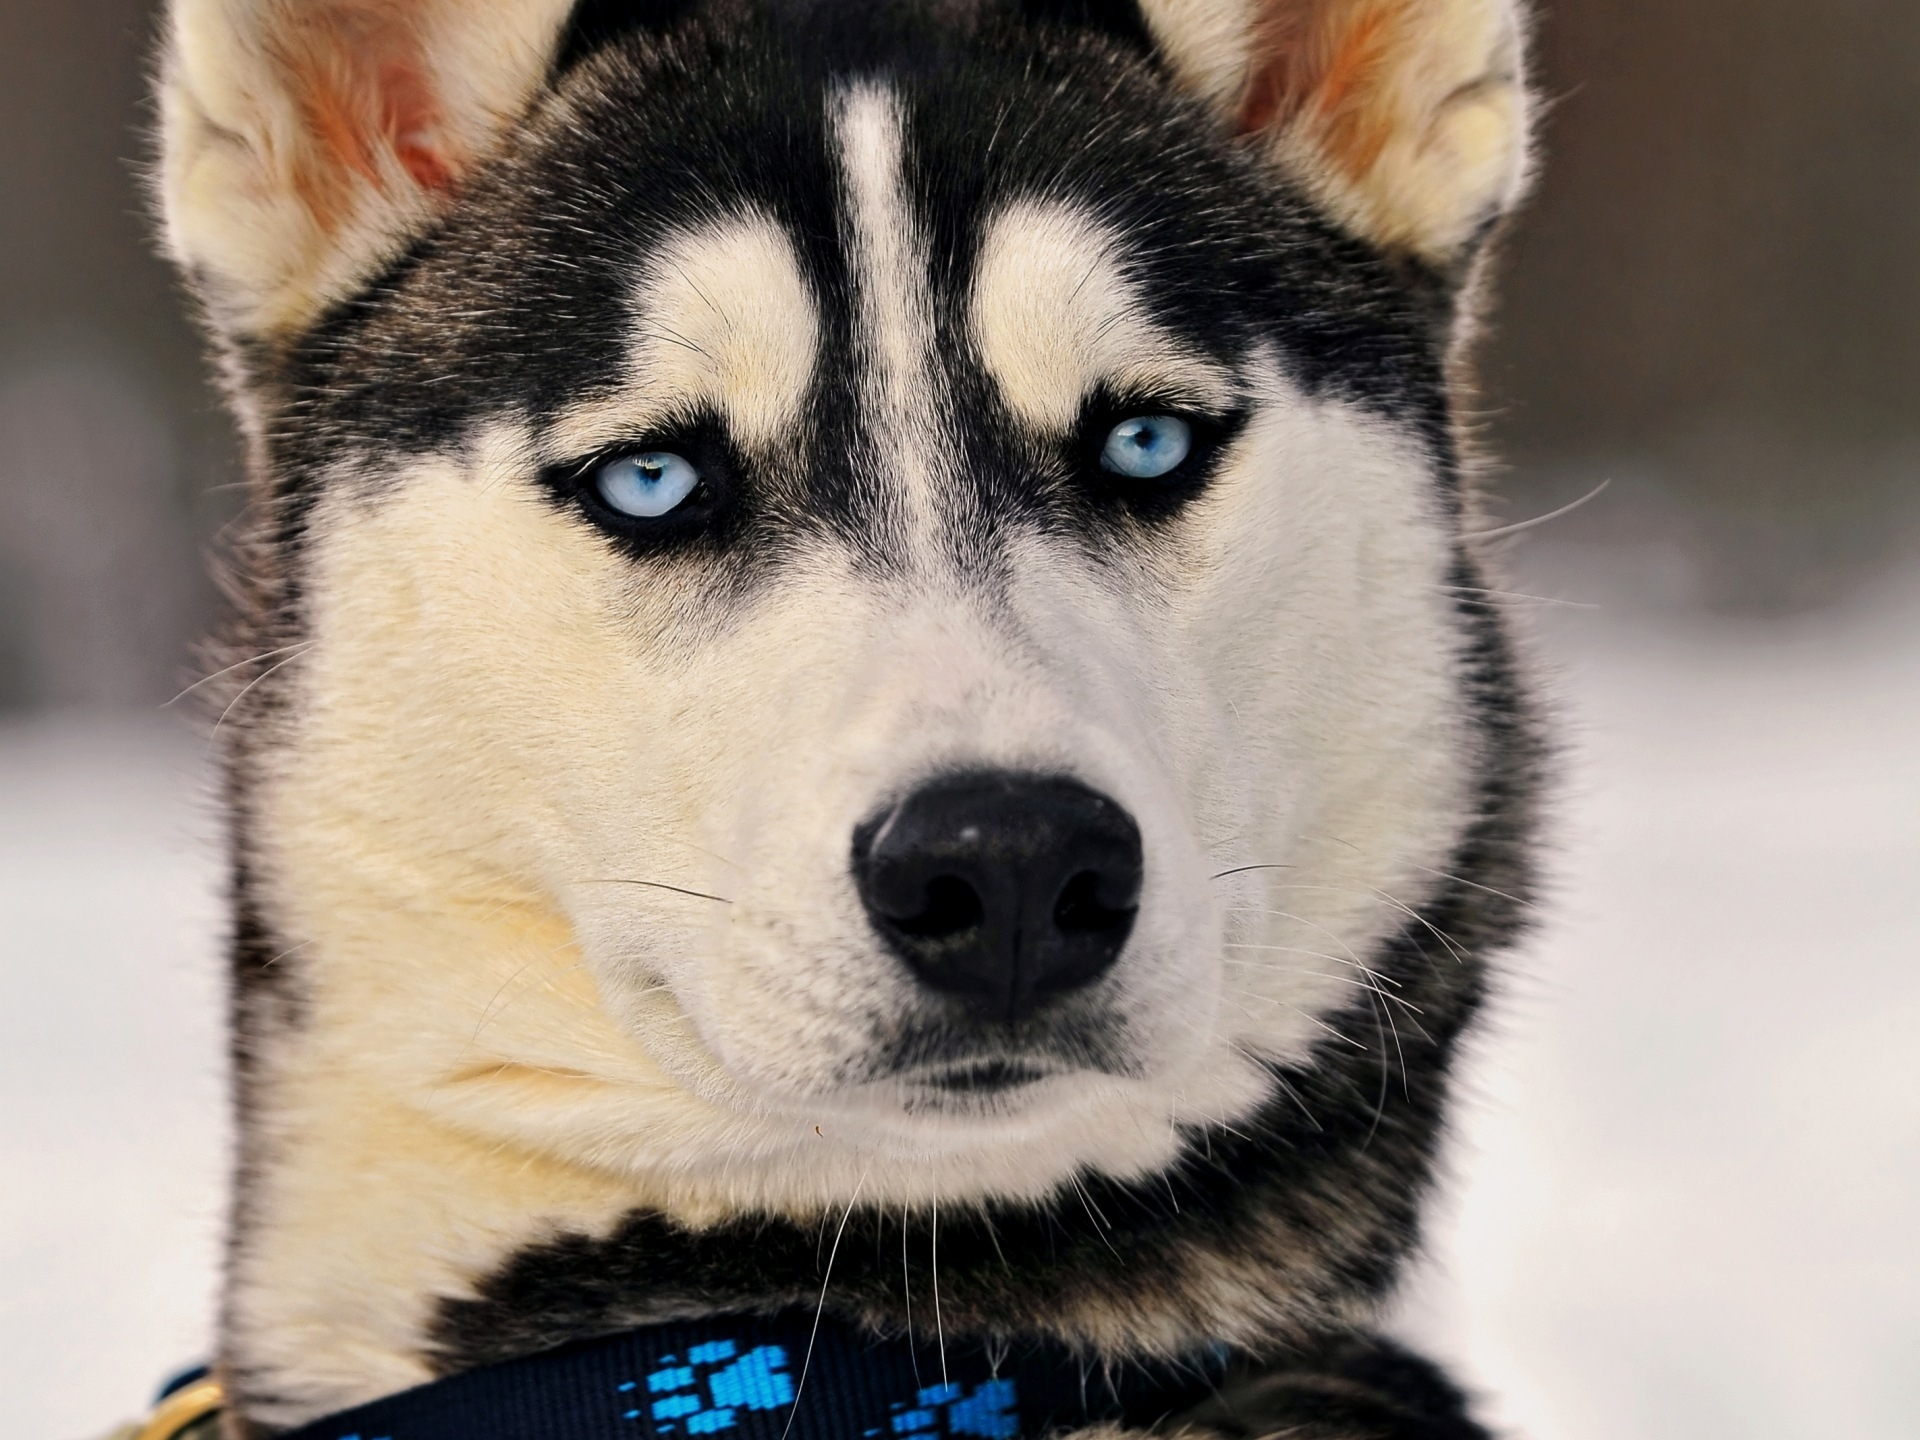 118295 Screensavers and Wallpapers Husky for phone. Download Animals, Dog, Muzzle, Husky, Blue Eyed, Blue-Eyed pictures for free